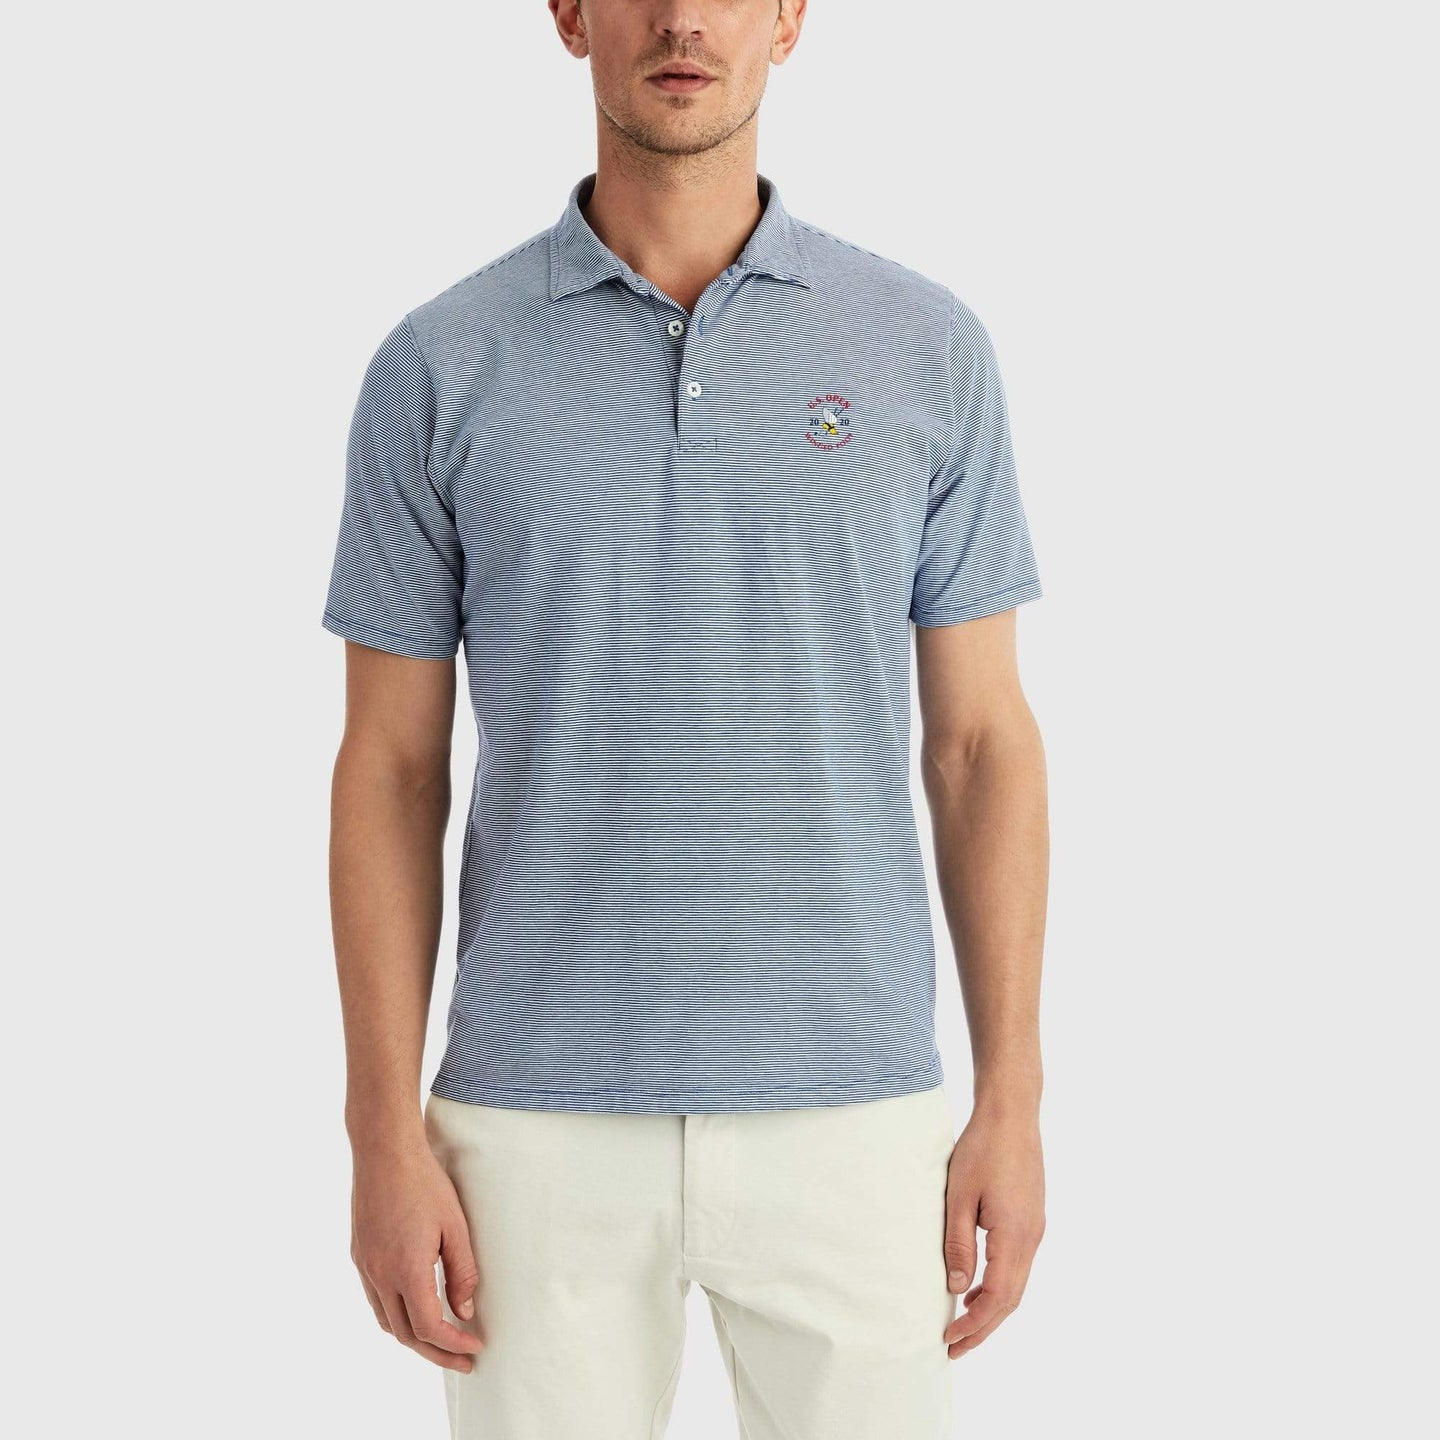 2020 U.S. OPEN VIN POLO